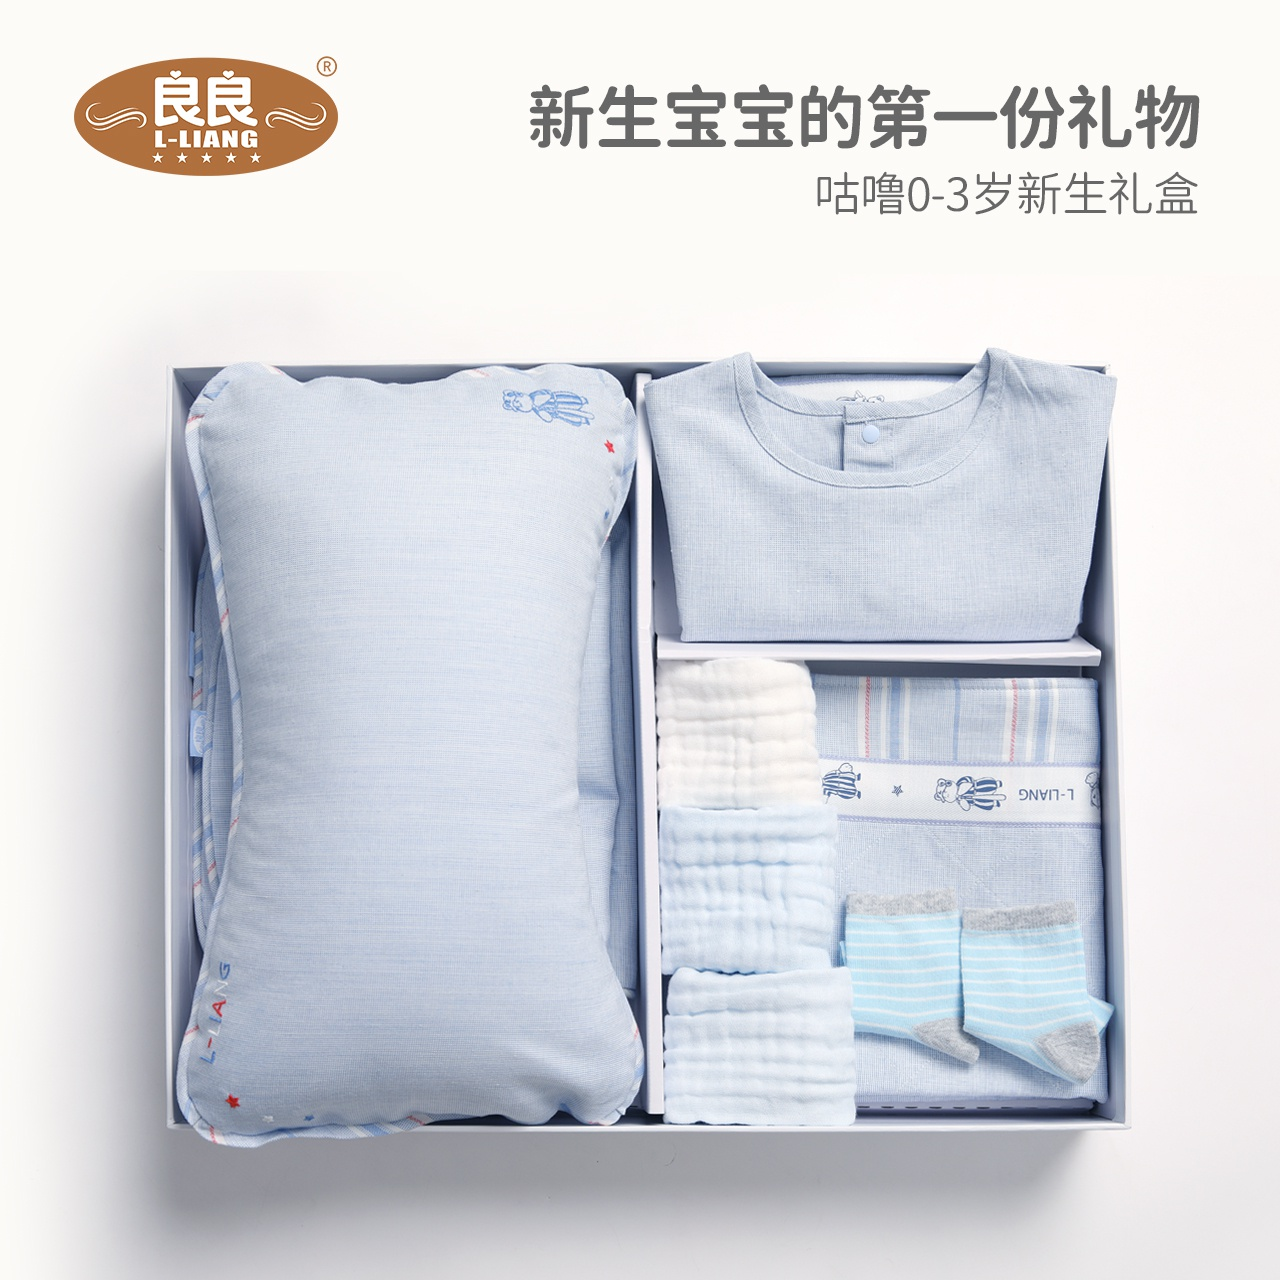 Liangliang Baby Articles Eight-piece Neonatal Baby Gift Box Full Moon Suit on the Bed of Newborn Babies